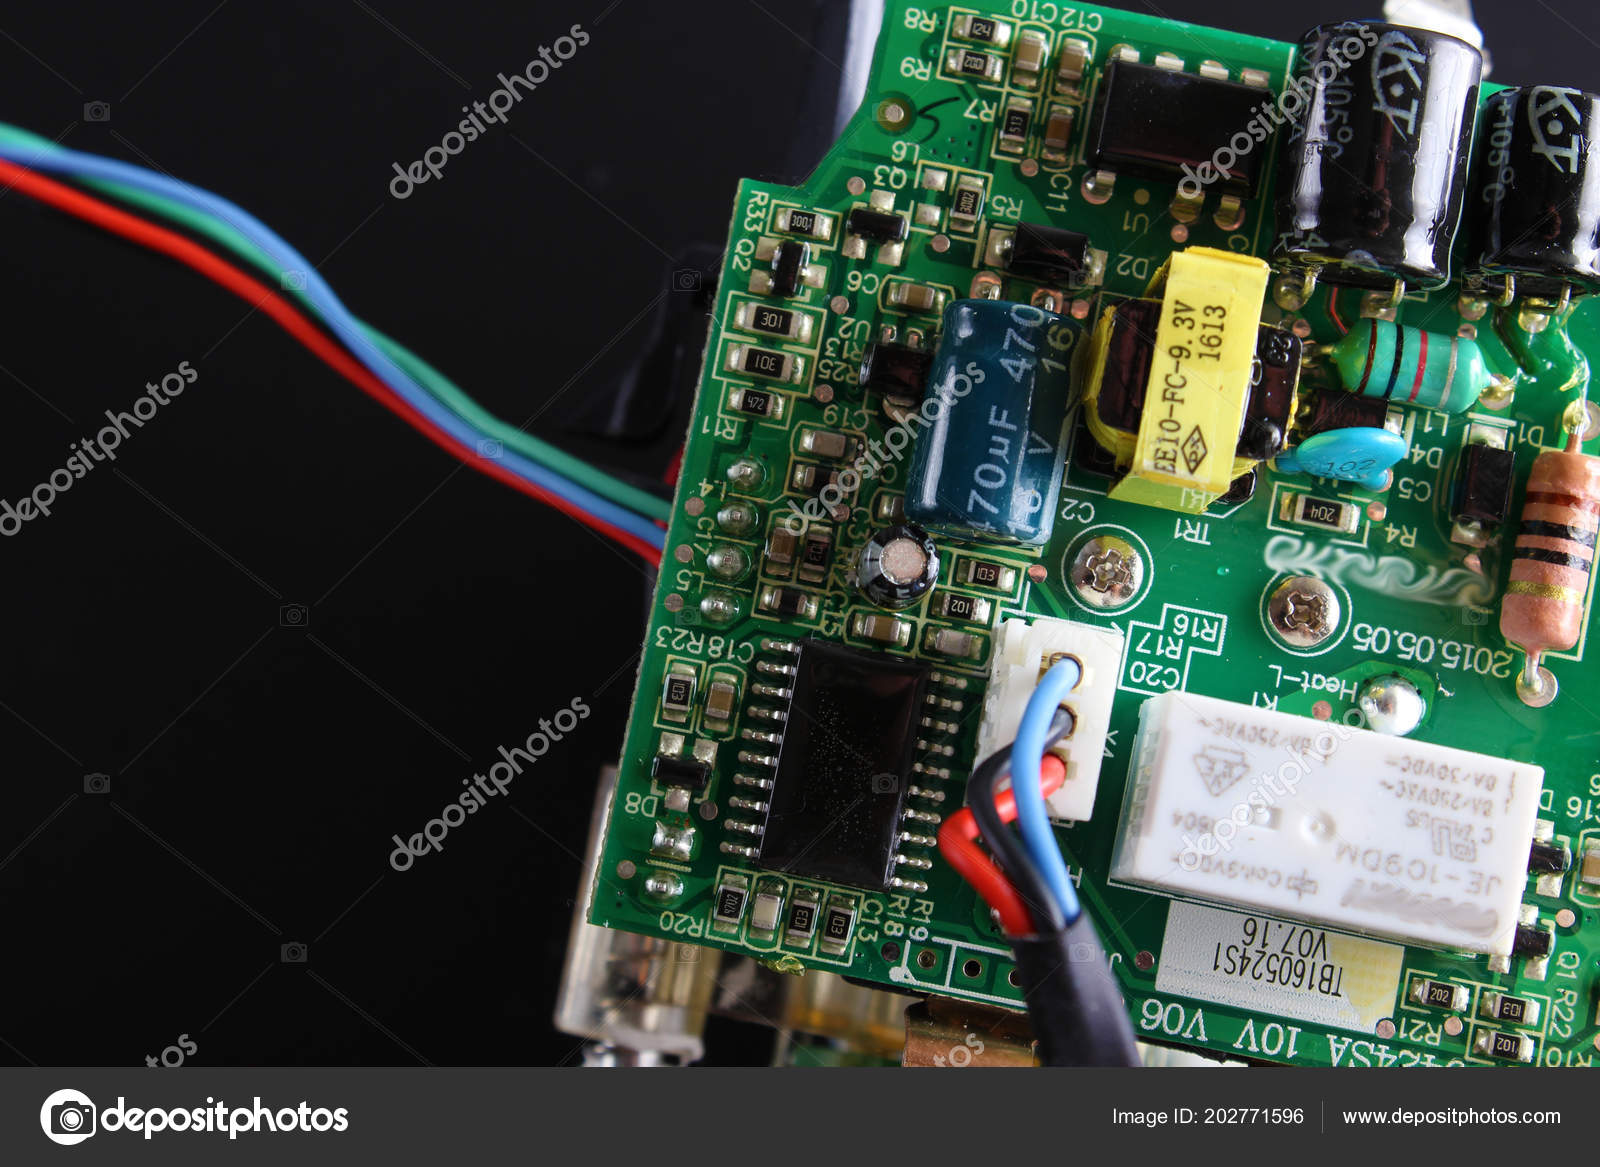 Electronic Circuit Components Black Background Stock Photo And